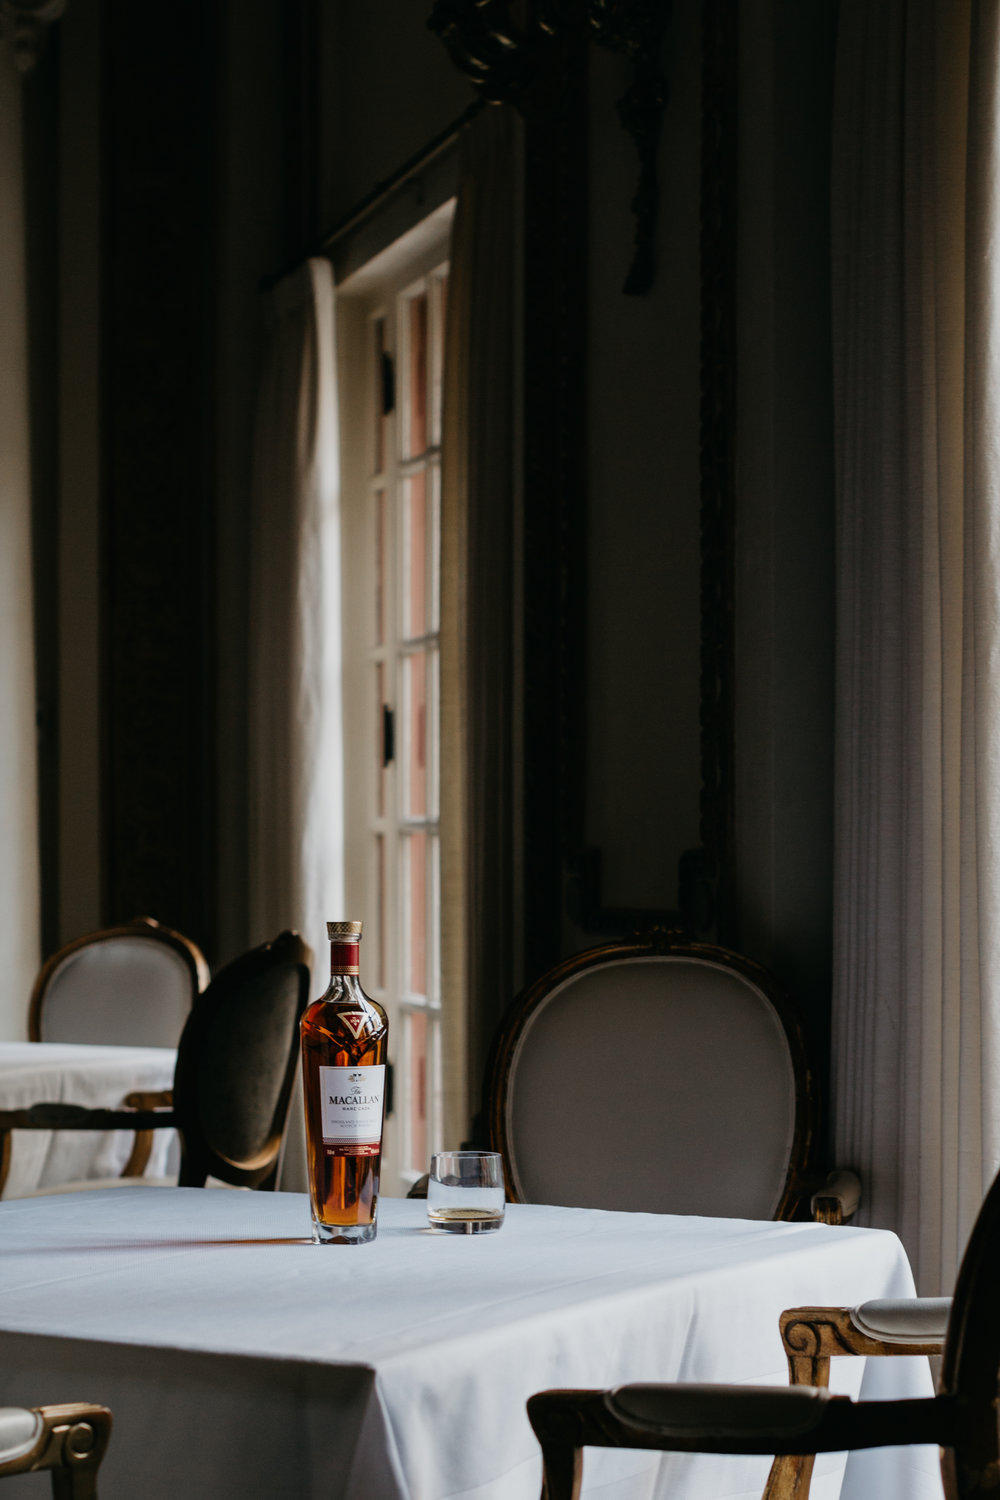 Bottle of The Macallan sitting on table in The French Room at the Adolphus Hotel. photo by Collin Sansom